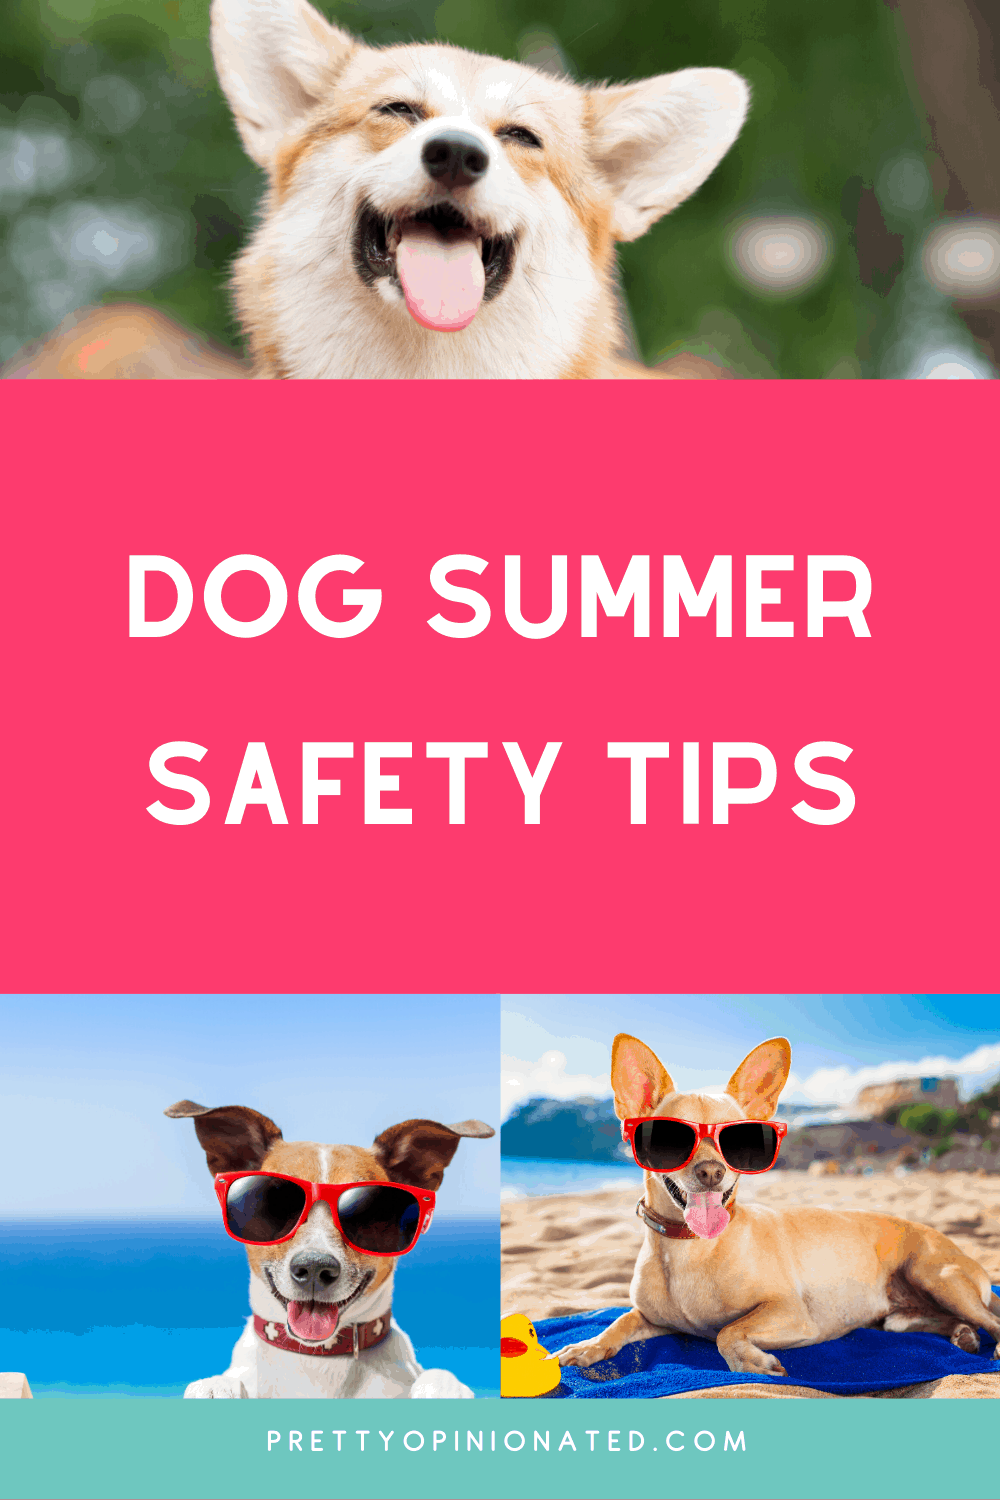 Here are a few key tips to help you keep your dog safe this summer.